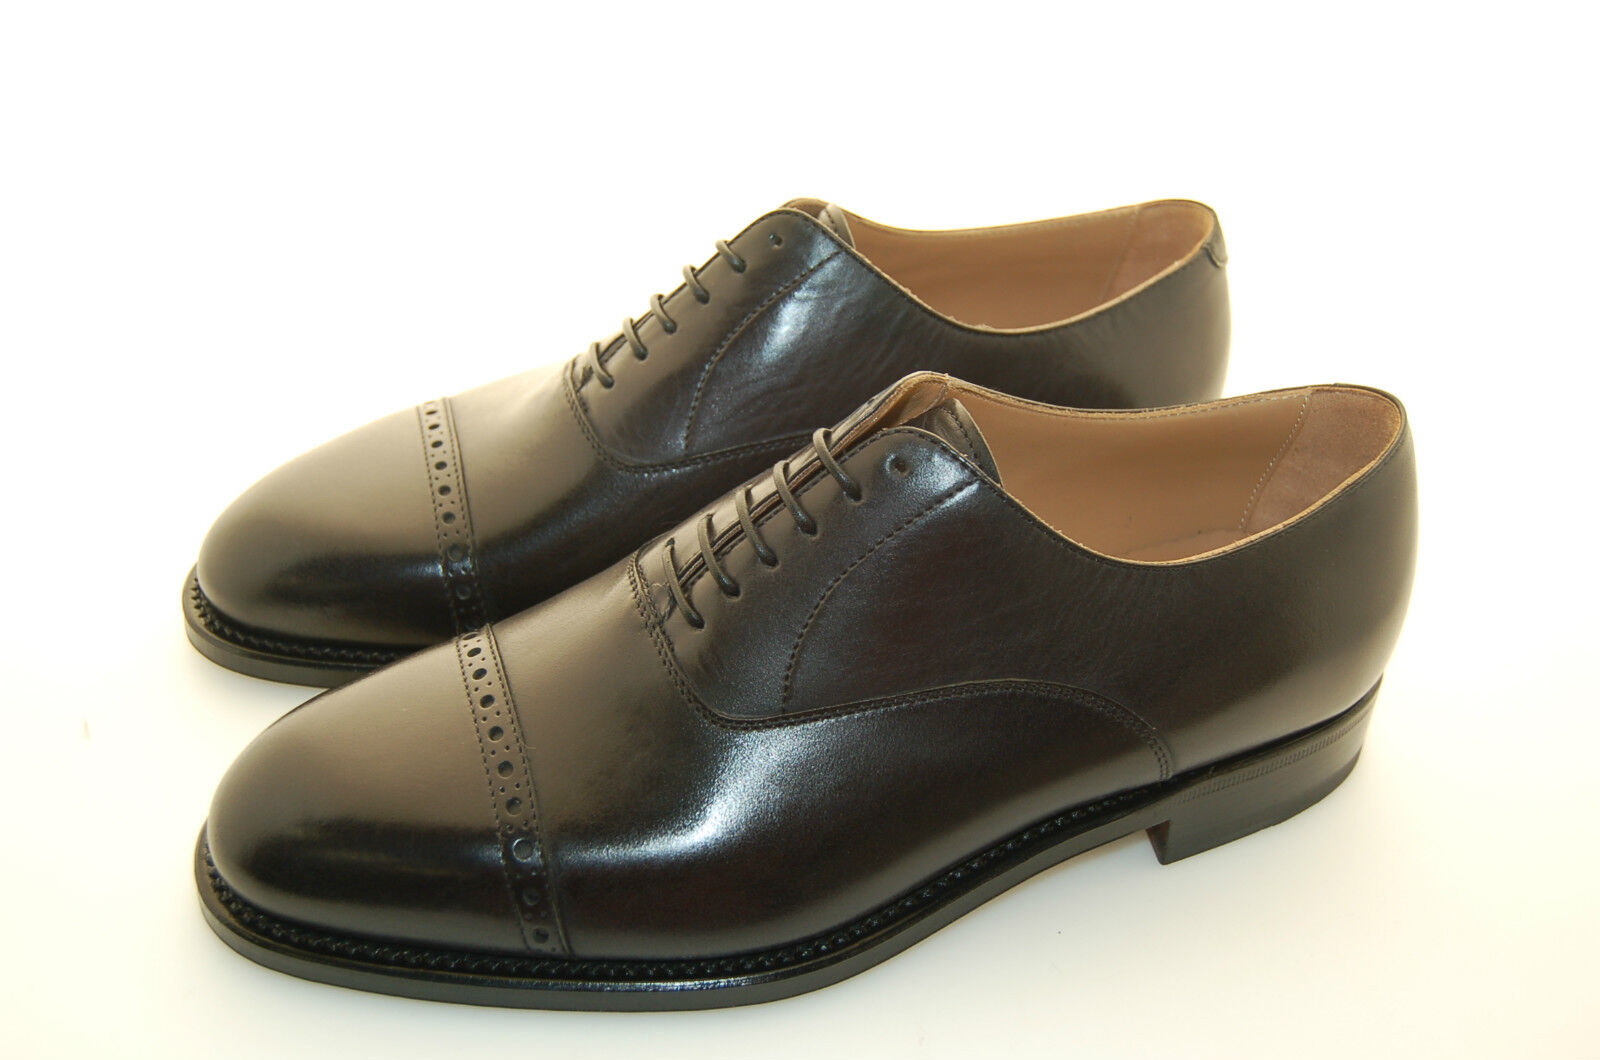 MAN - 41½ - 7Eu - OXFORD CAPTOE W. PERFS - CALF BLACK - LEATHER SOLE